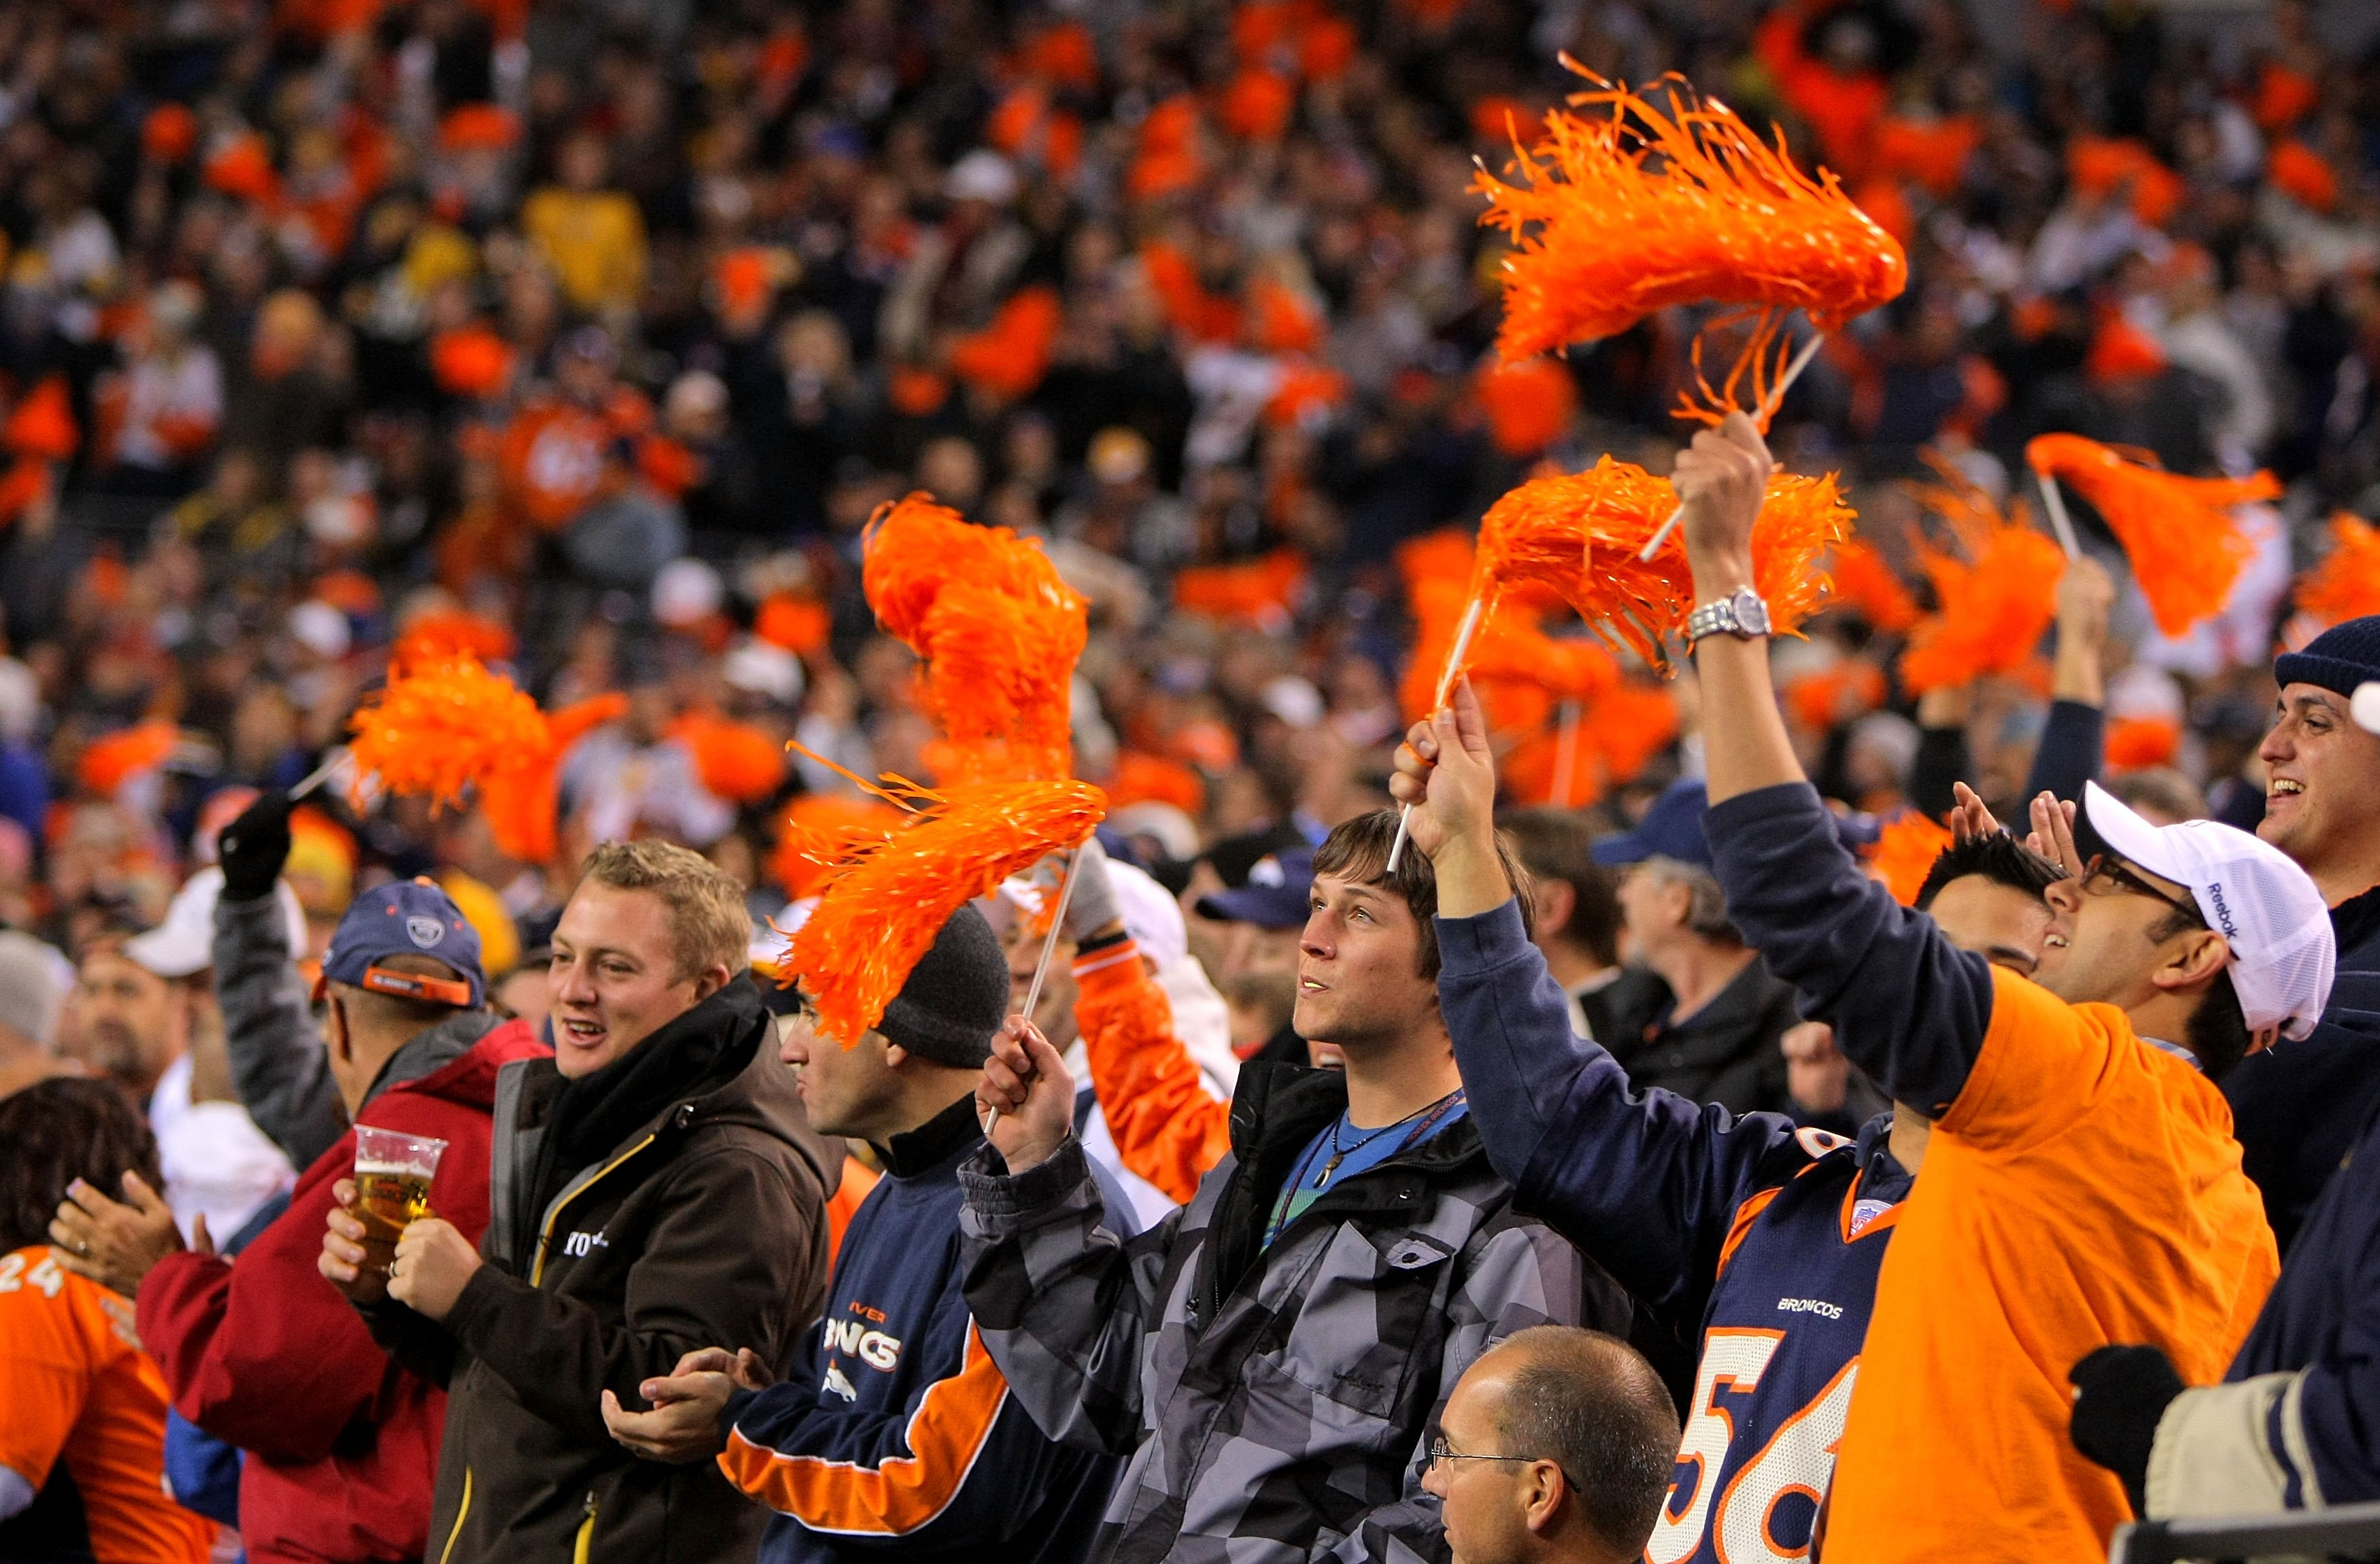 DENVER - NOVEMBER 09:  Fans support the Denver Broncos against the Pittsburgh Steelers defense on during NFL action at Invesco Field at Mile High on November 9, 2009 in Denver, Colorado. The Steelers defeated the Broncos 28-10.  (Photo by Doug Pensinger/G